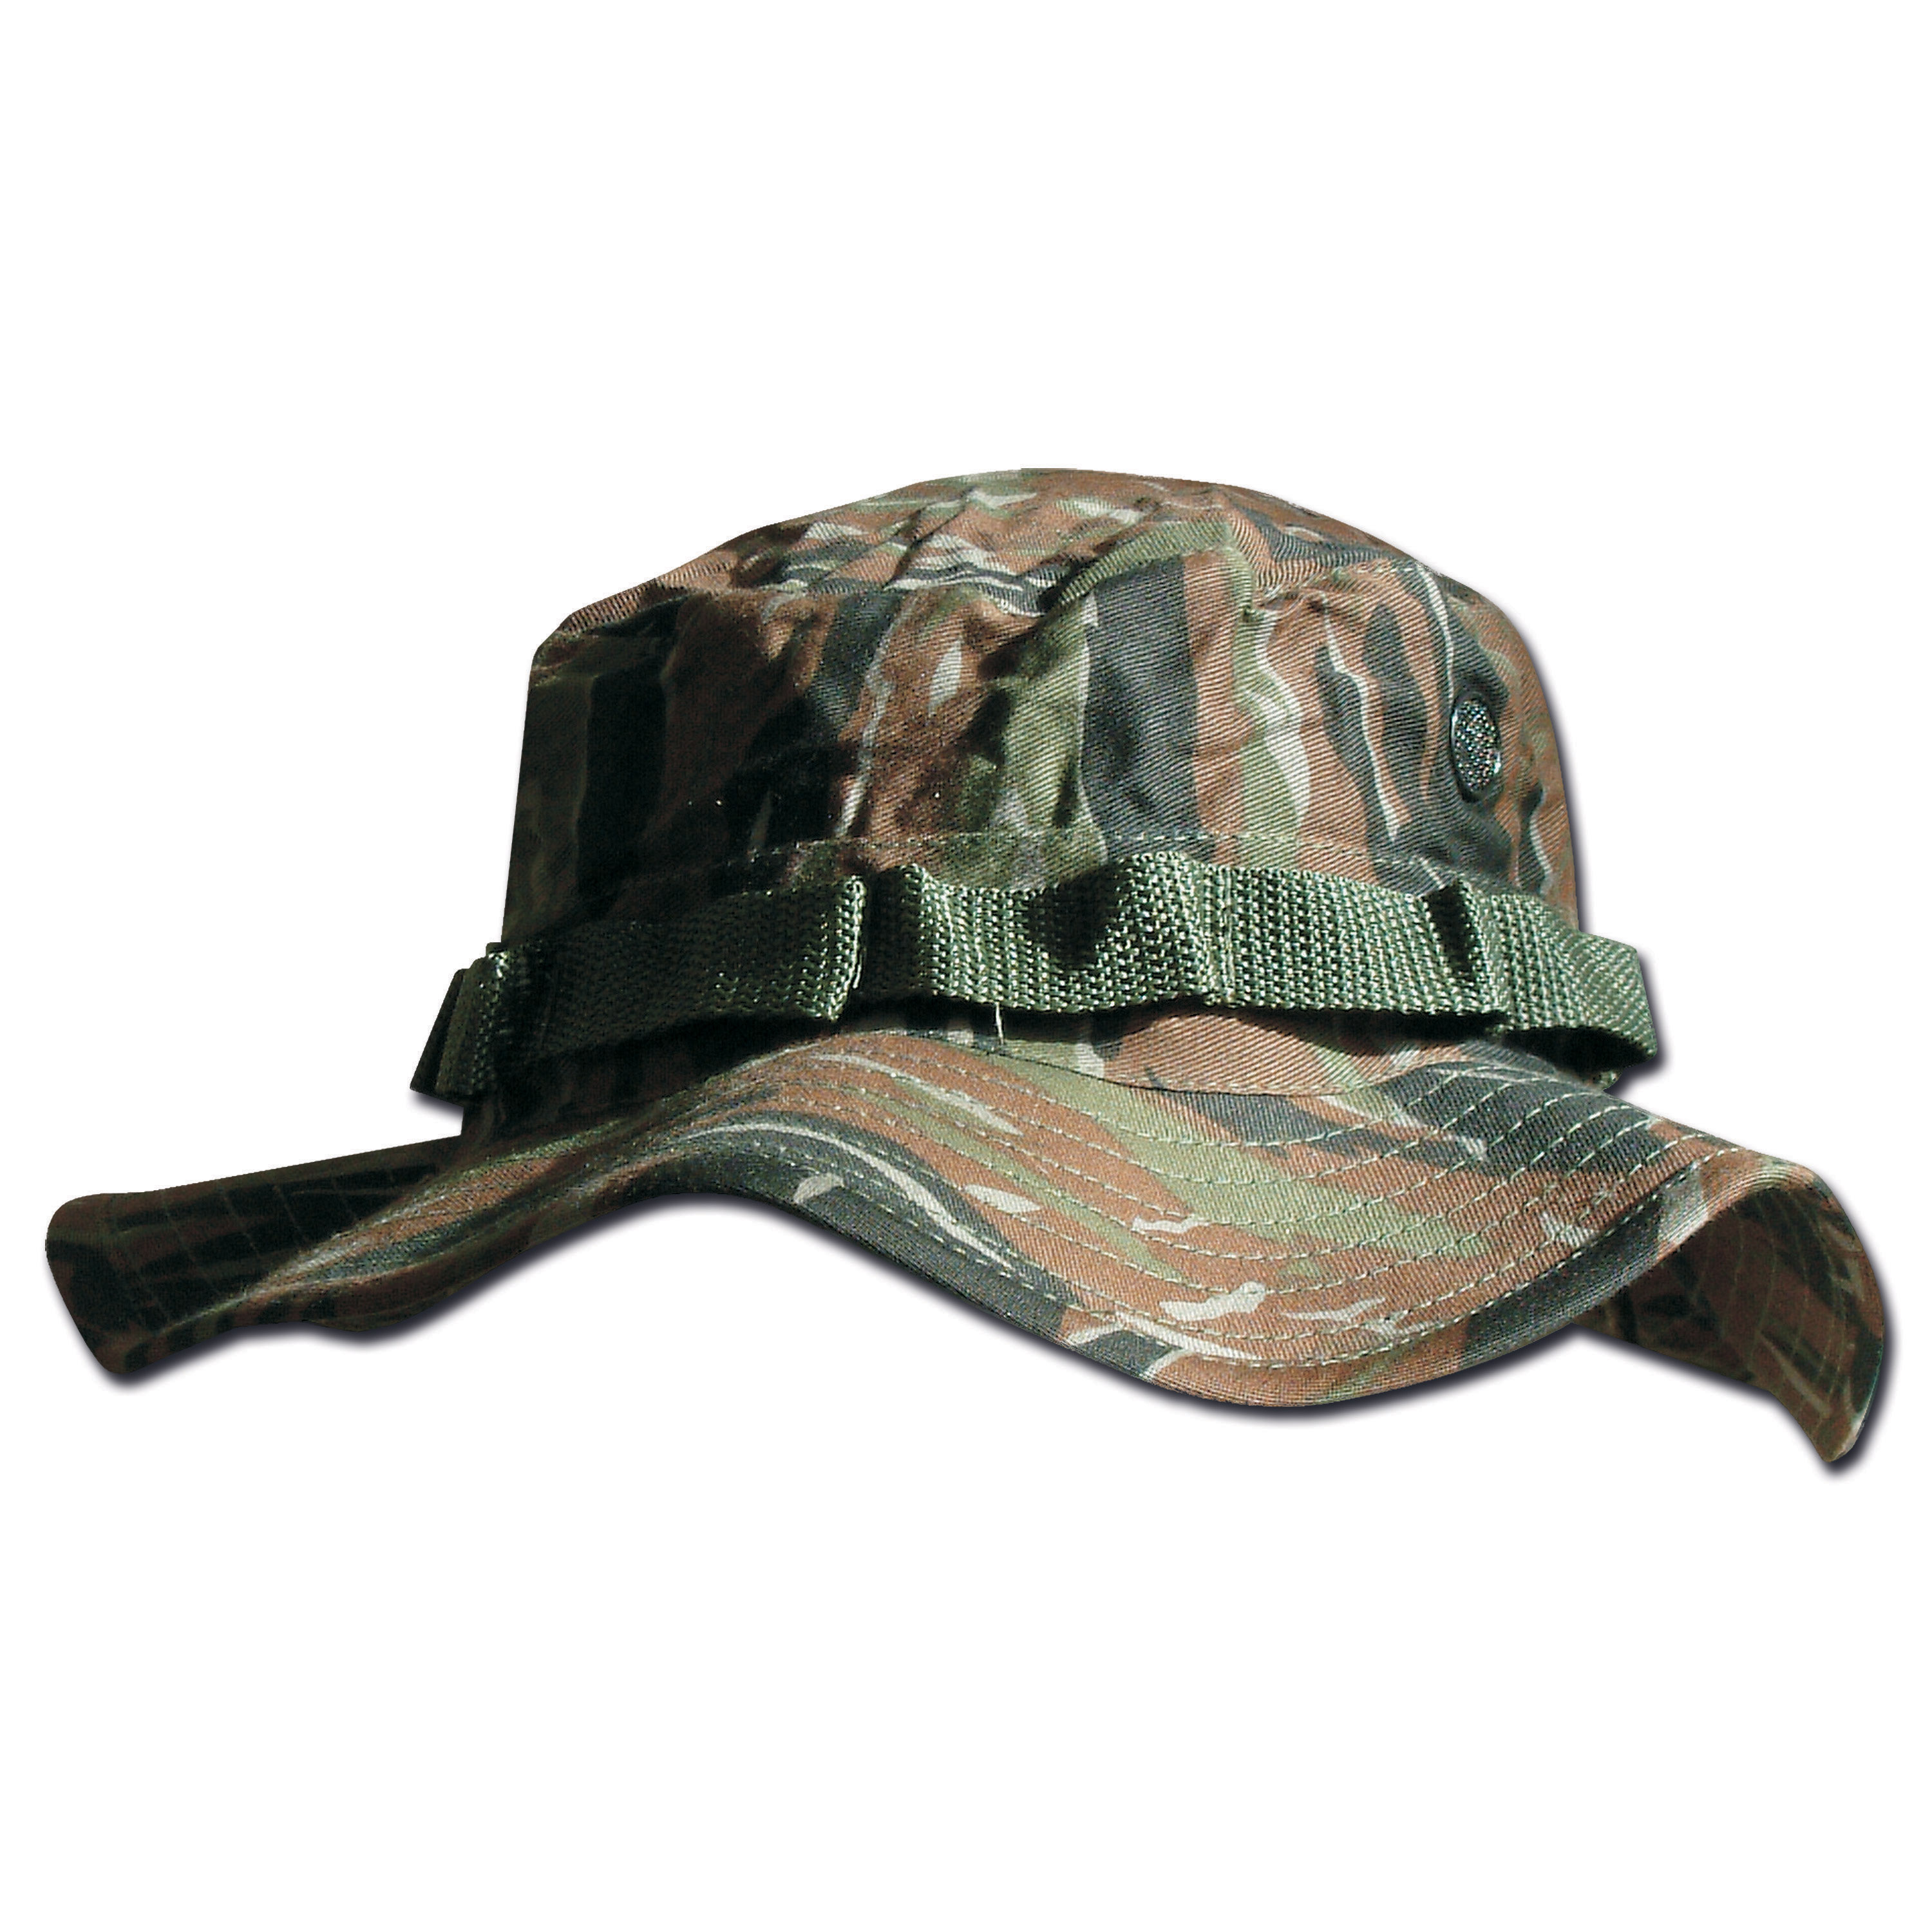 Boonie hat tigerstripe Import